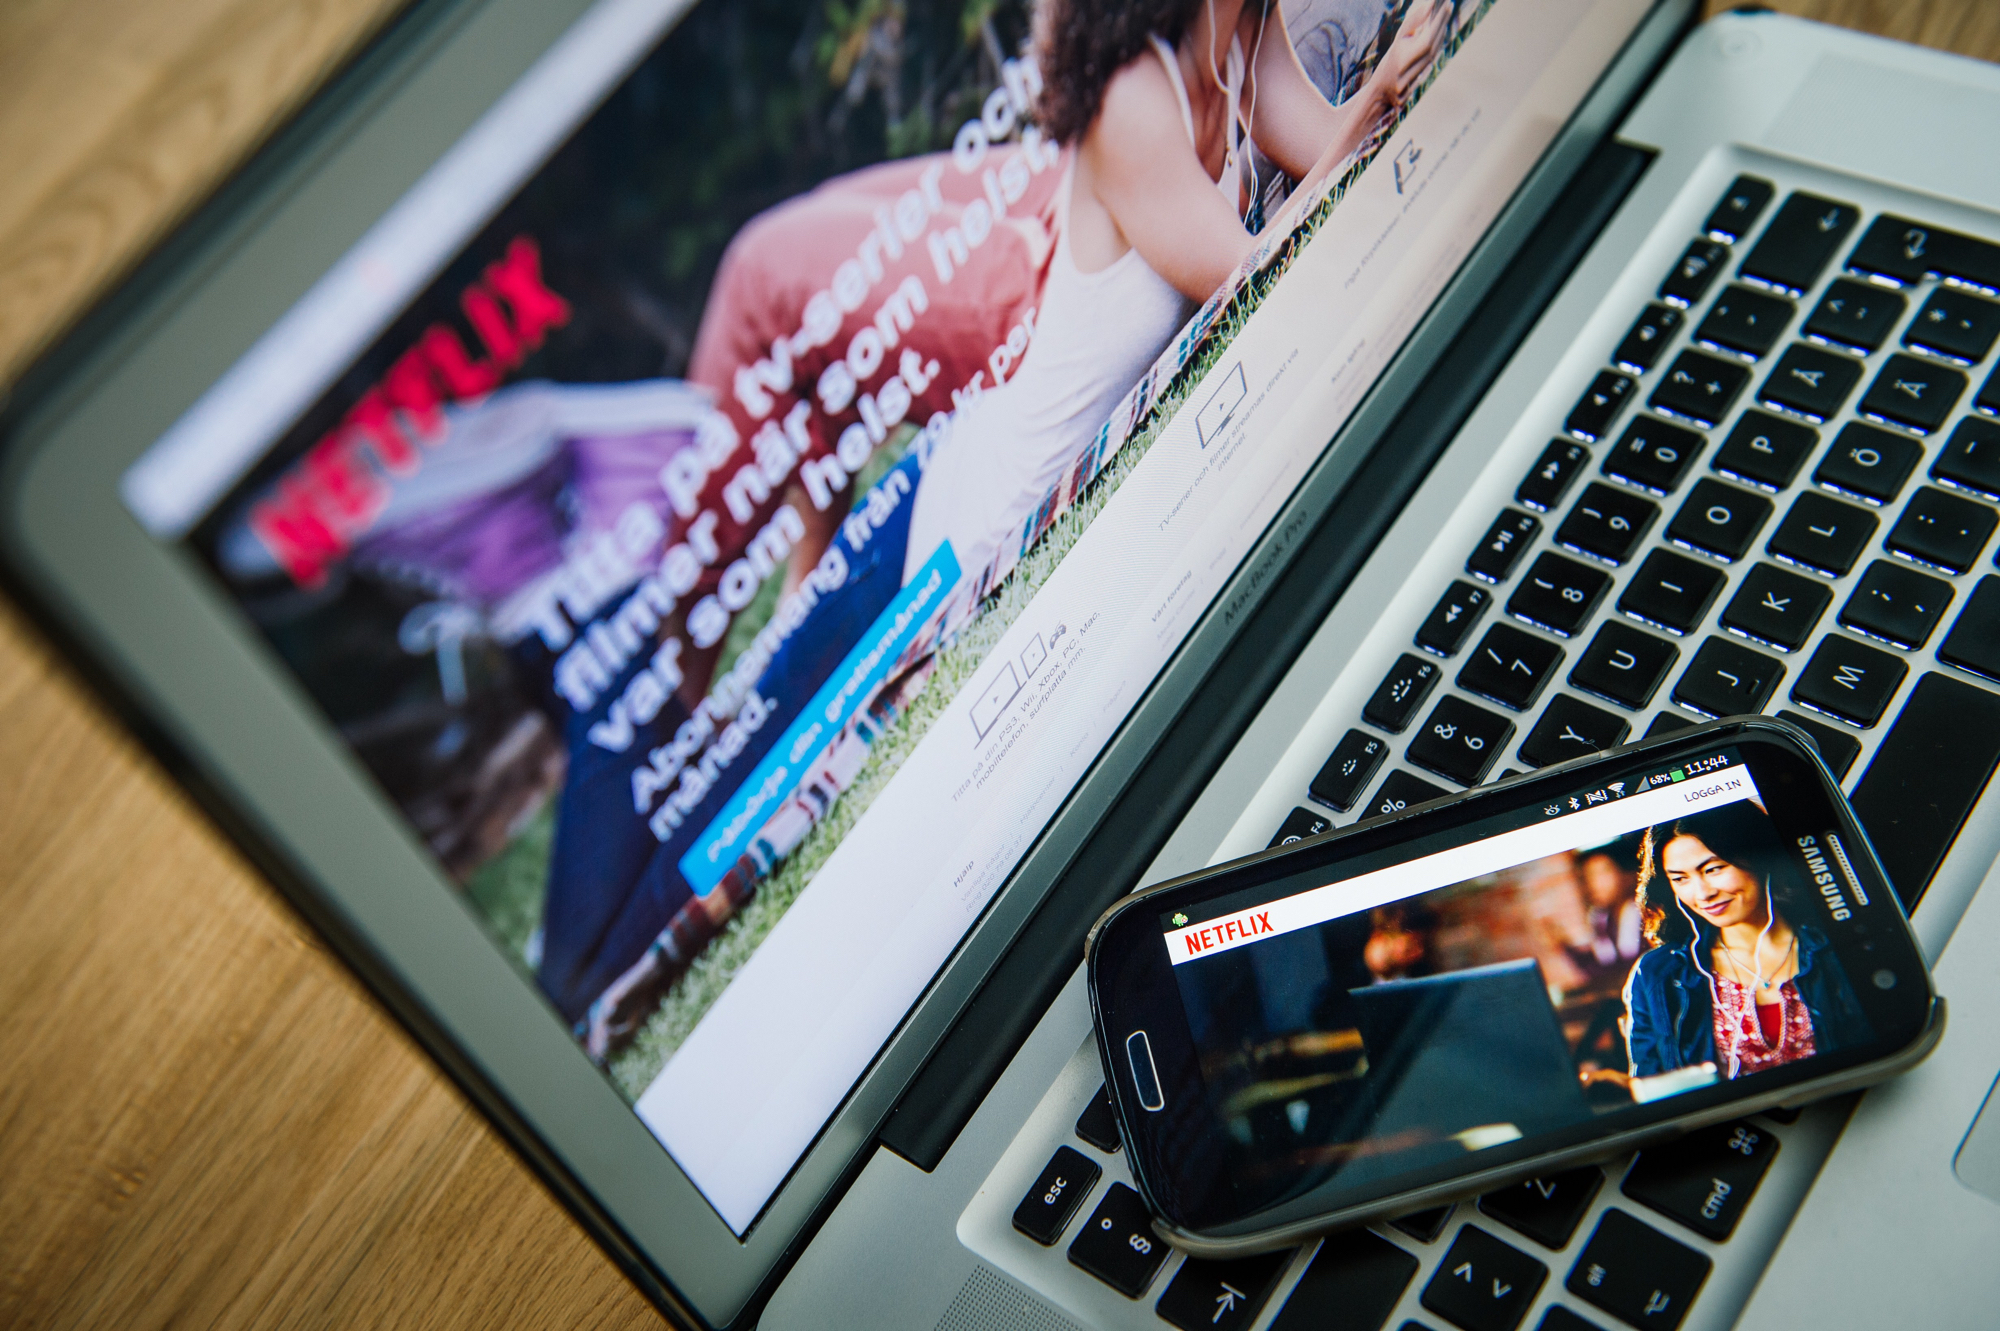 This Chrome extension solves one of Netflix's most annoying features